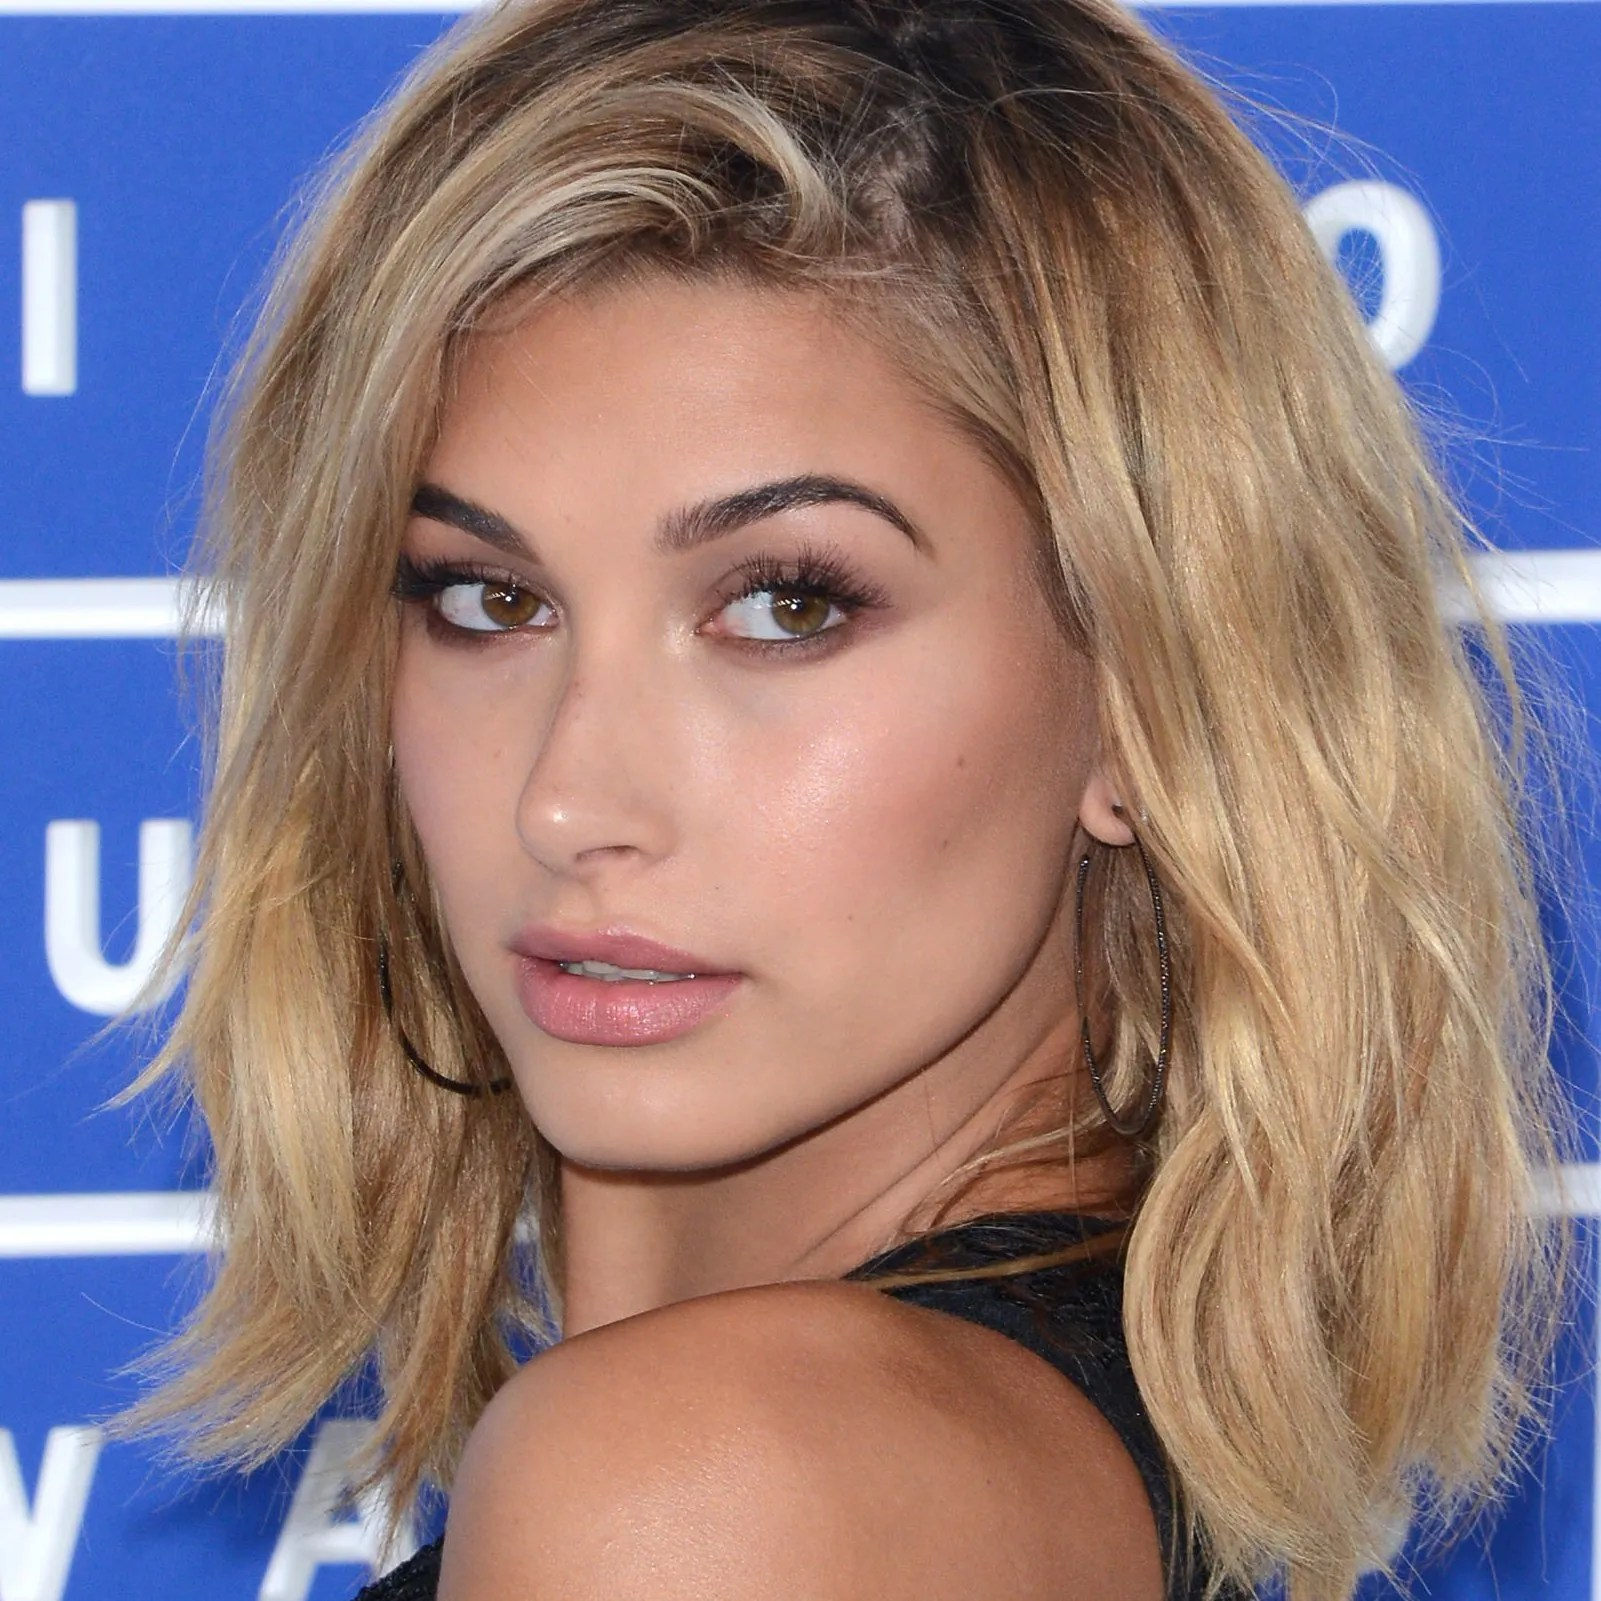 Hailey Baldwin Just Dyed Her Hair the Prettiest Rose Gold Color     Hailey Baldwin Just Dyed Her Hair the Prettiest Rose Gold Color   Glamour